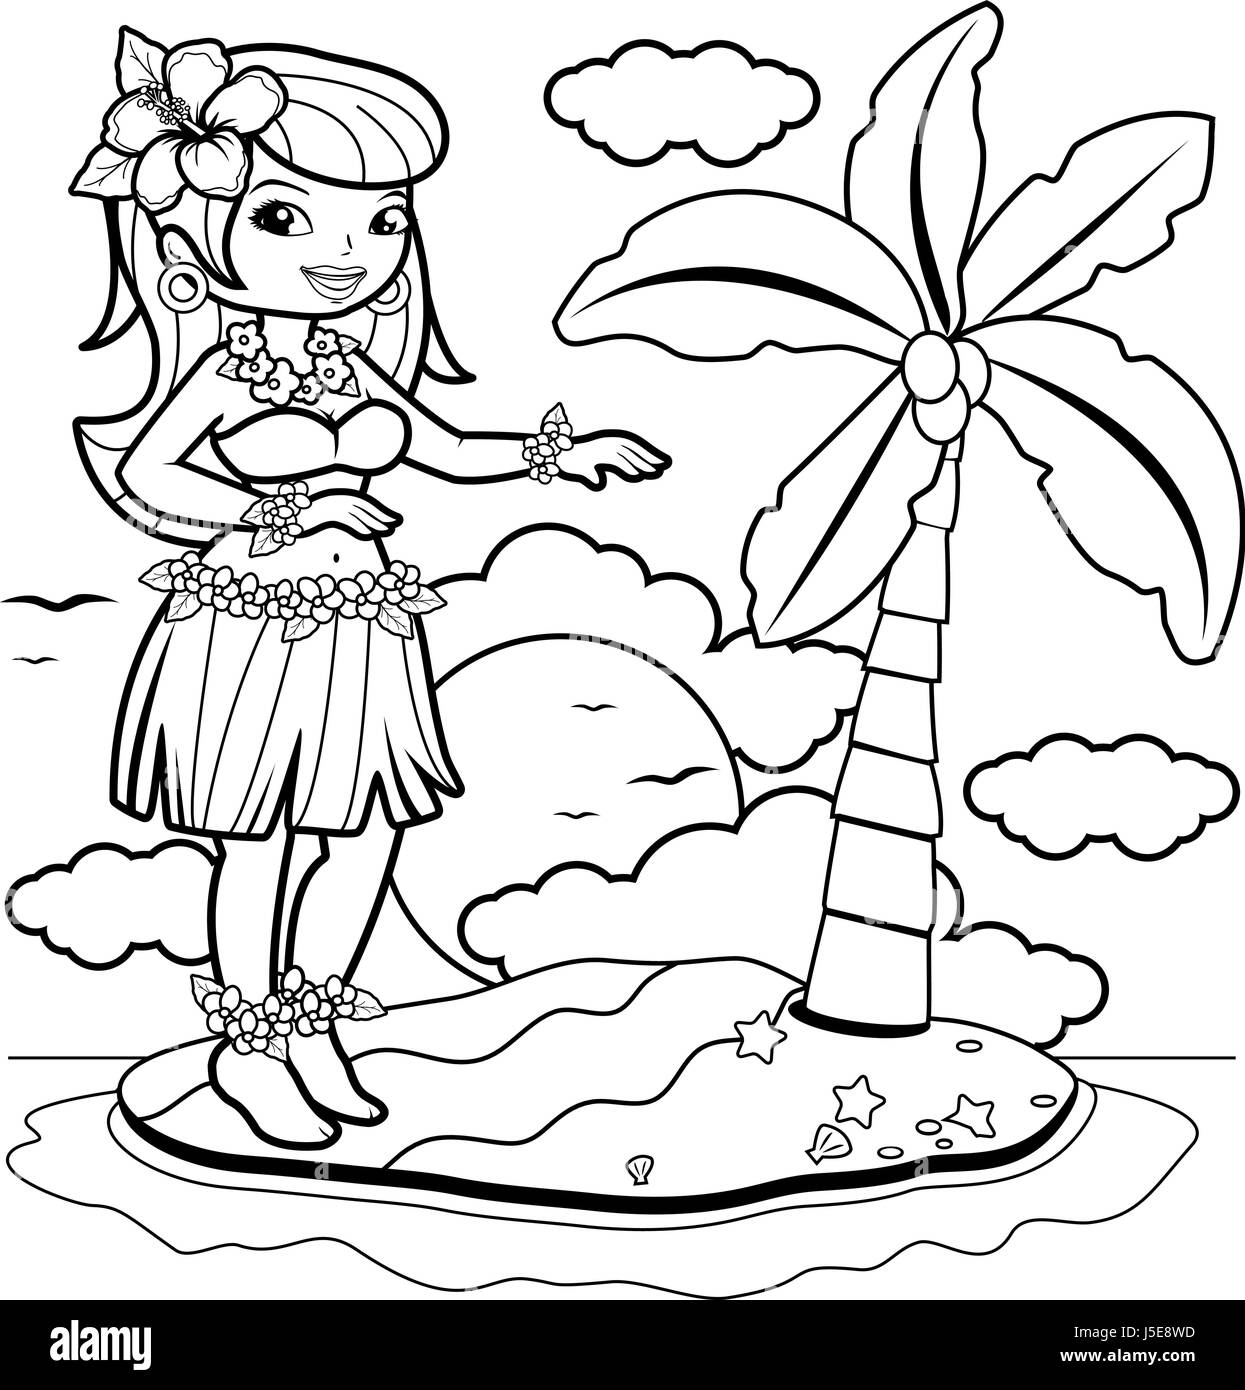 hawaiian goose coloring pages - photo#21